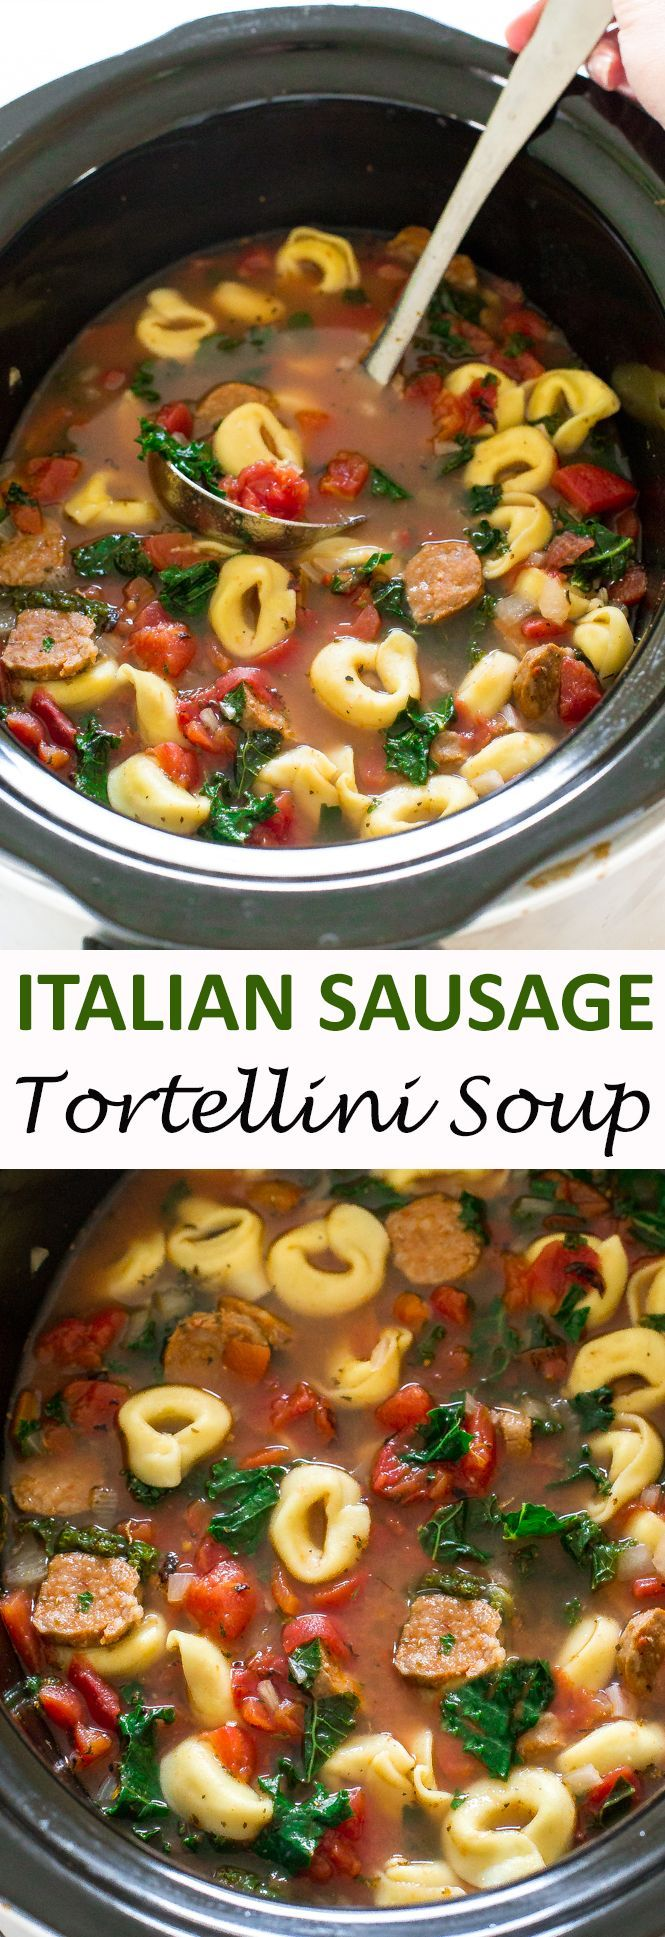 Slow Cooker Tortellini Sausage and Kale Soup. A super easy and delicious meal that takes only 10 minutes of prep time. | chefsavvy.com #recipe #Italian #sausage #tortellini #soup #crockpot